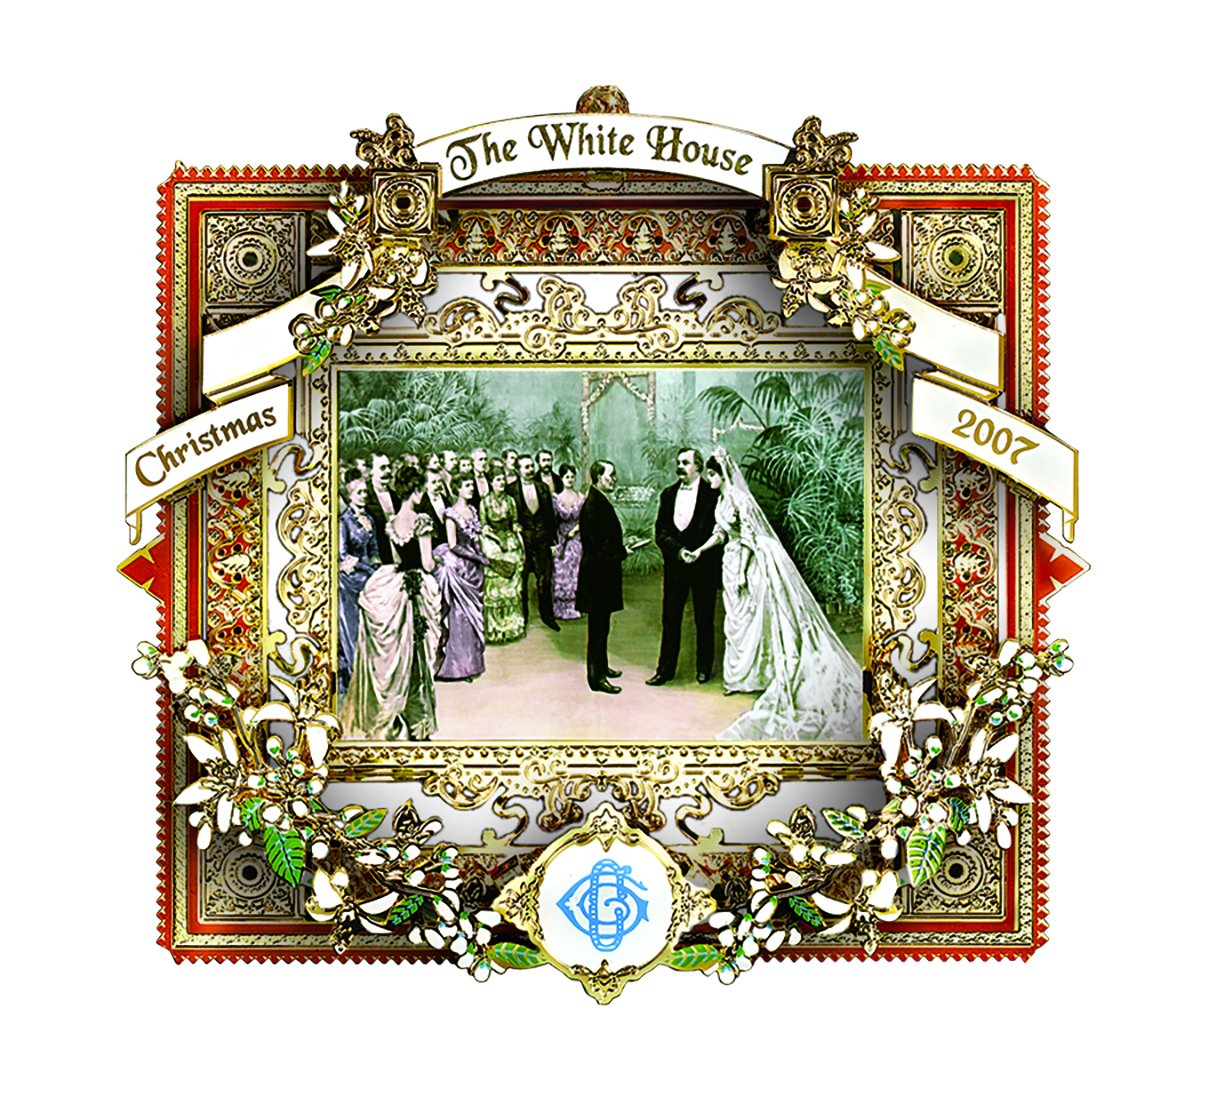 2007 White House Christmas Ornament, A President Marries In The White House